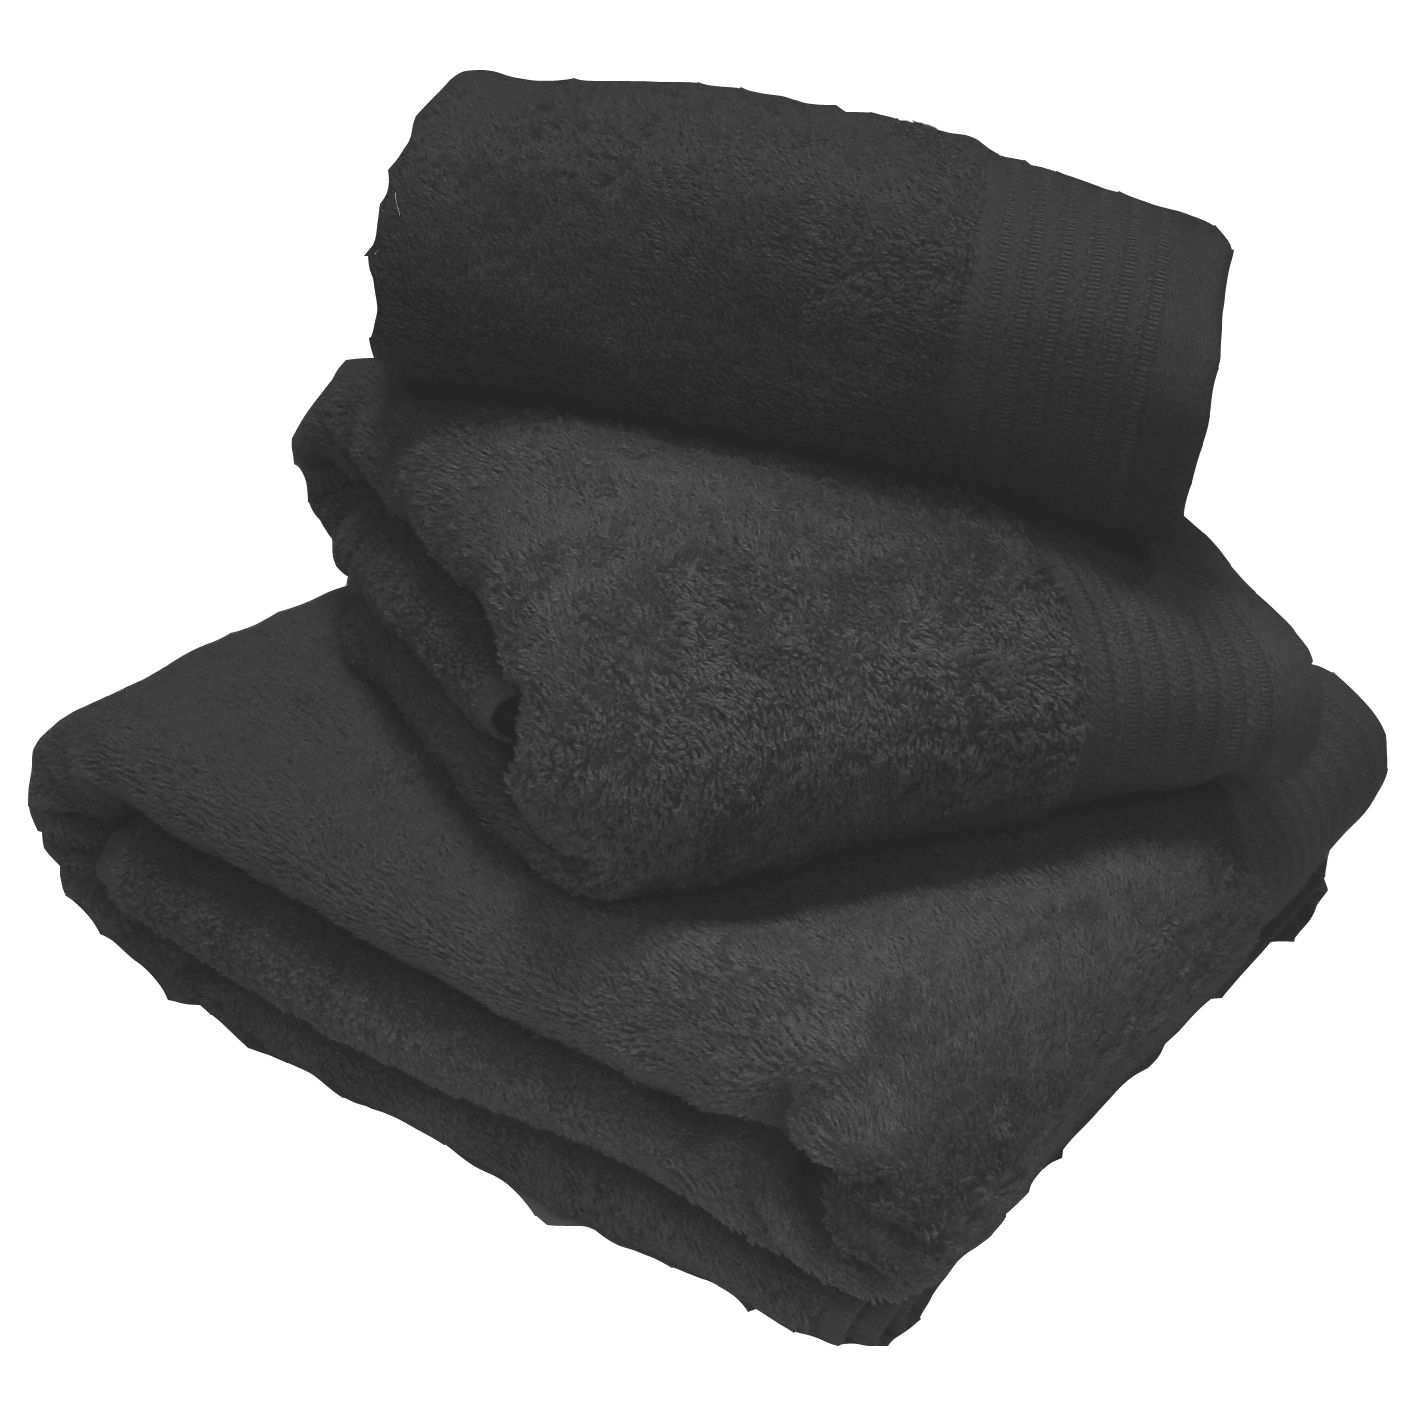 Luxury 100 Egyptian 600gsm Cotton Thick Heavyweight Combed Towels